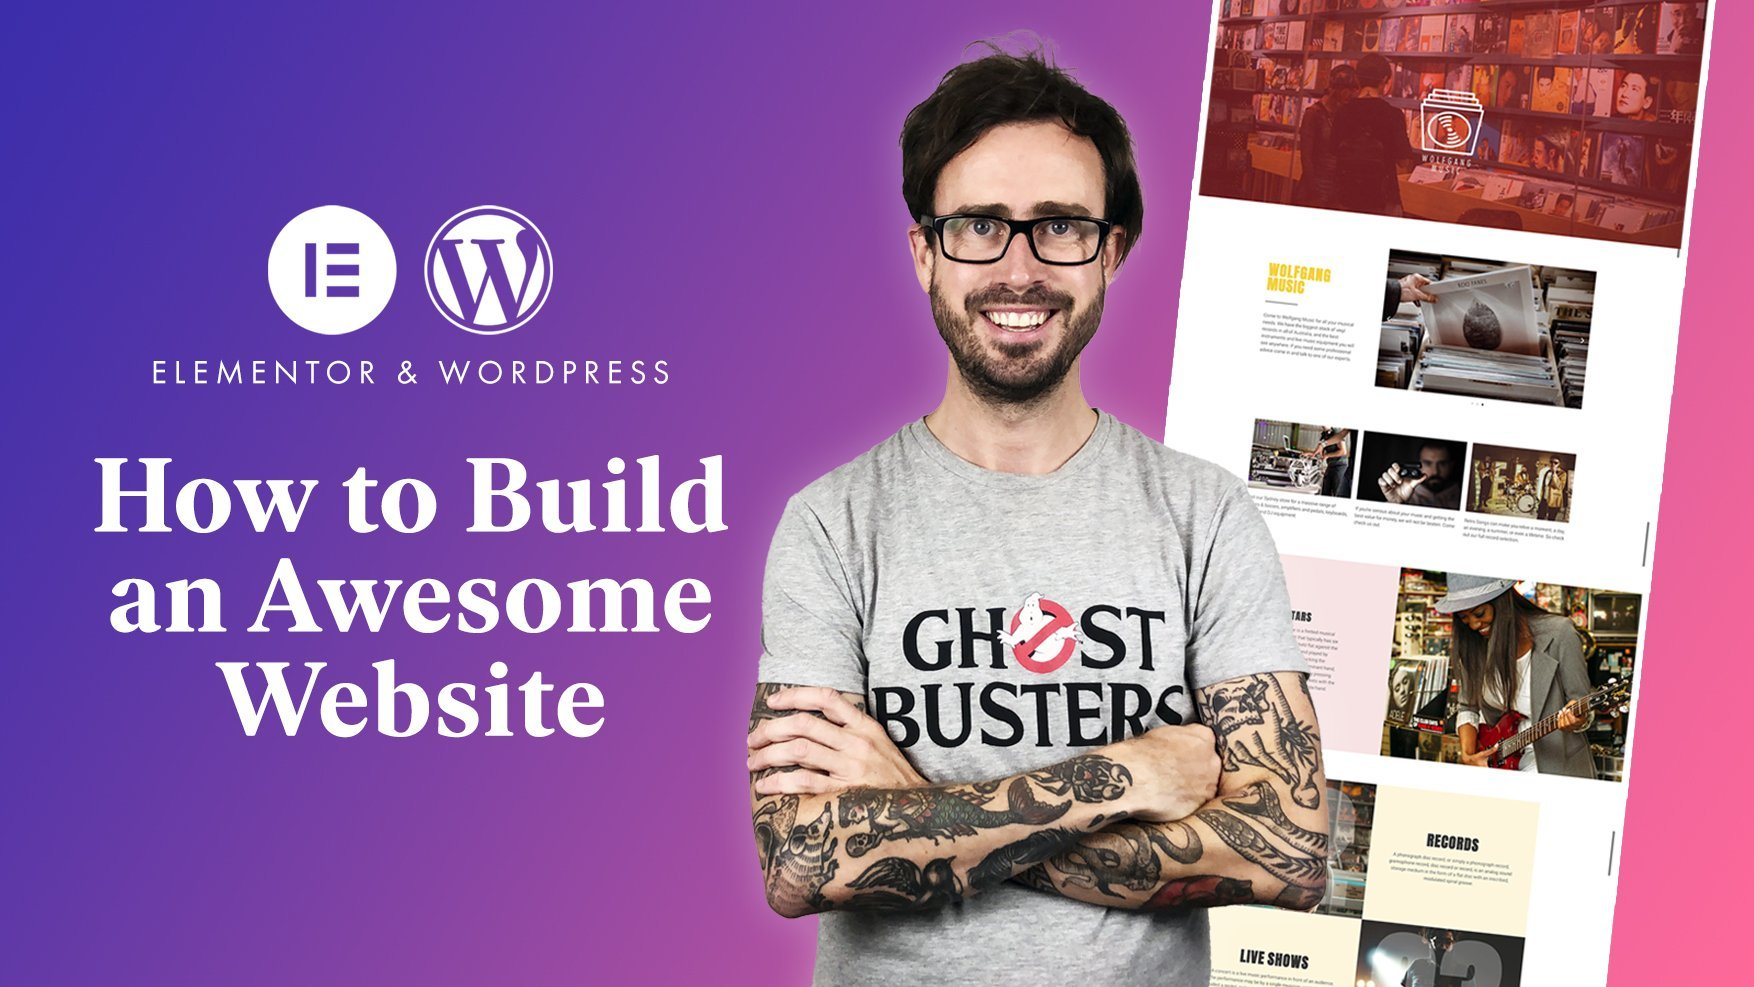 How to Use Elementor: Build an Awesome Wordpress Website, With No Code